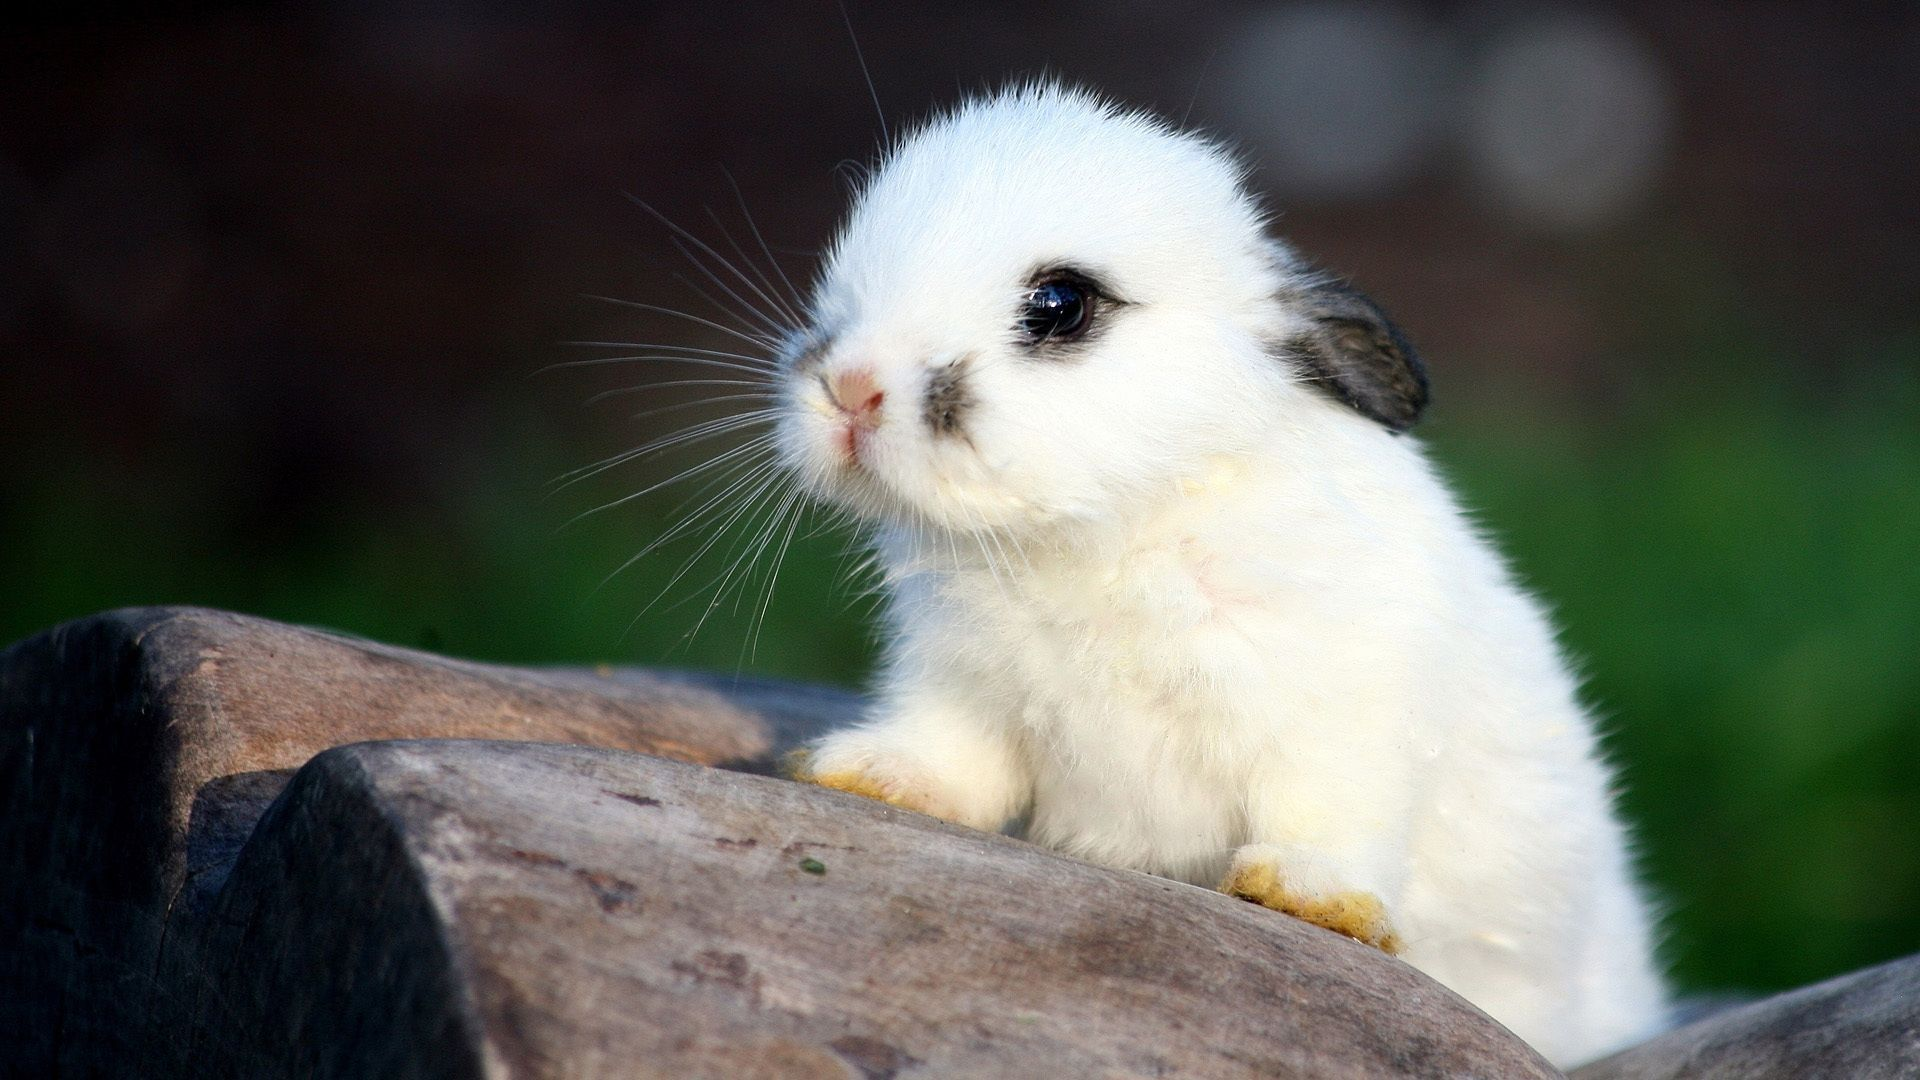 a picture of a rabbit